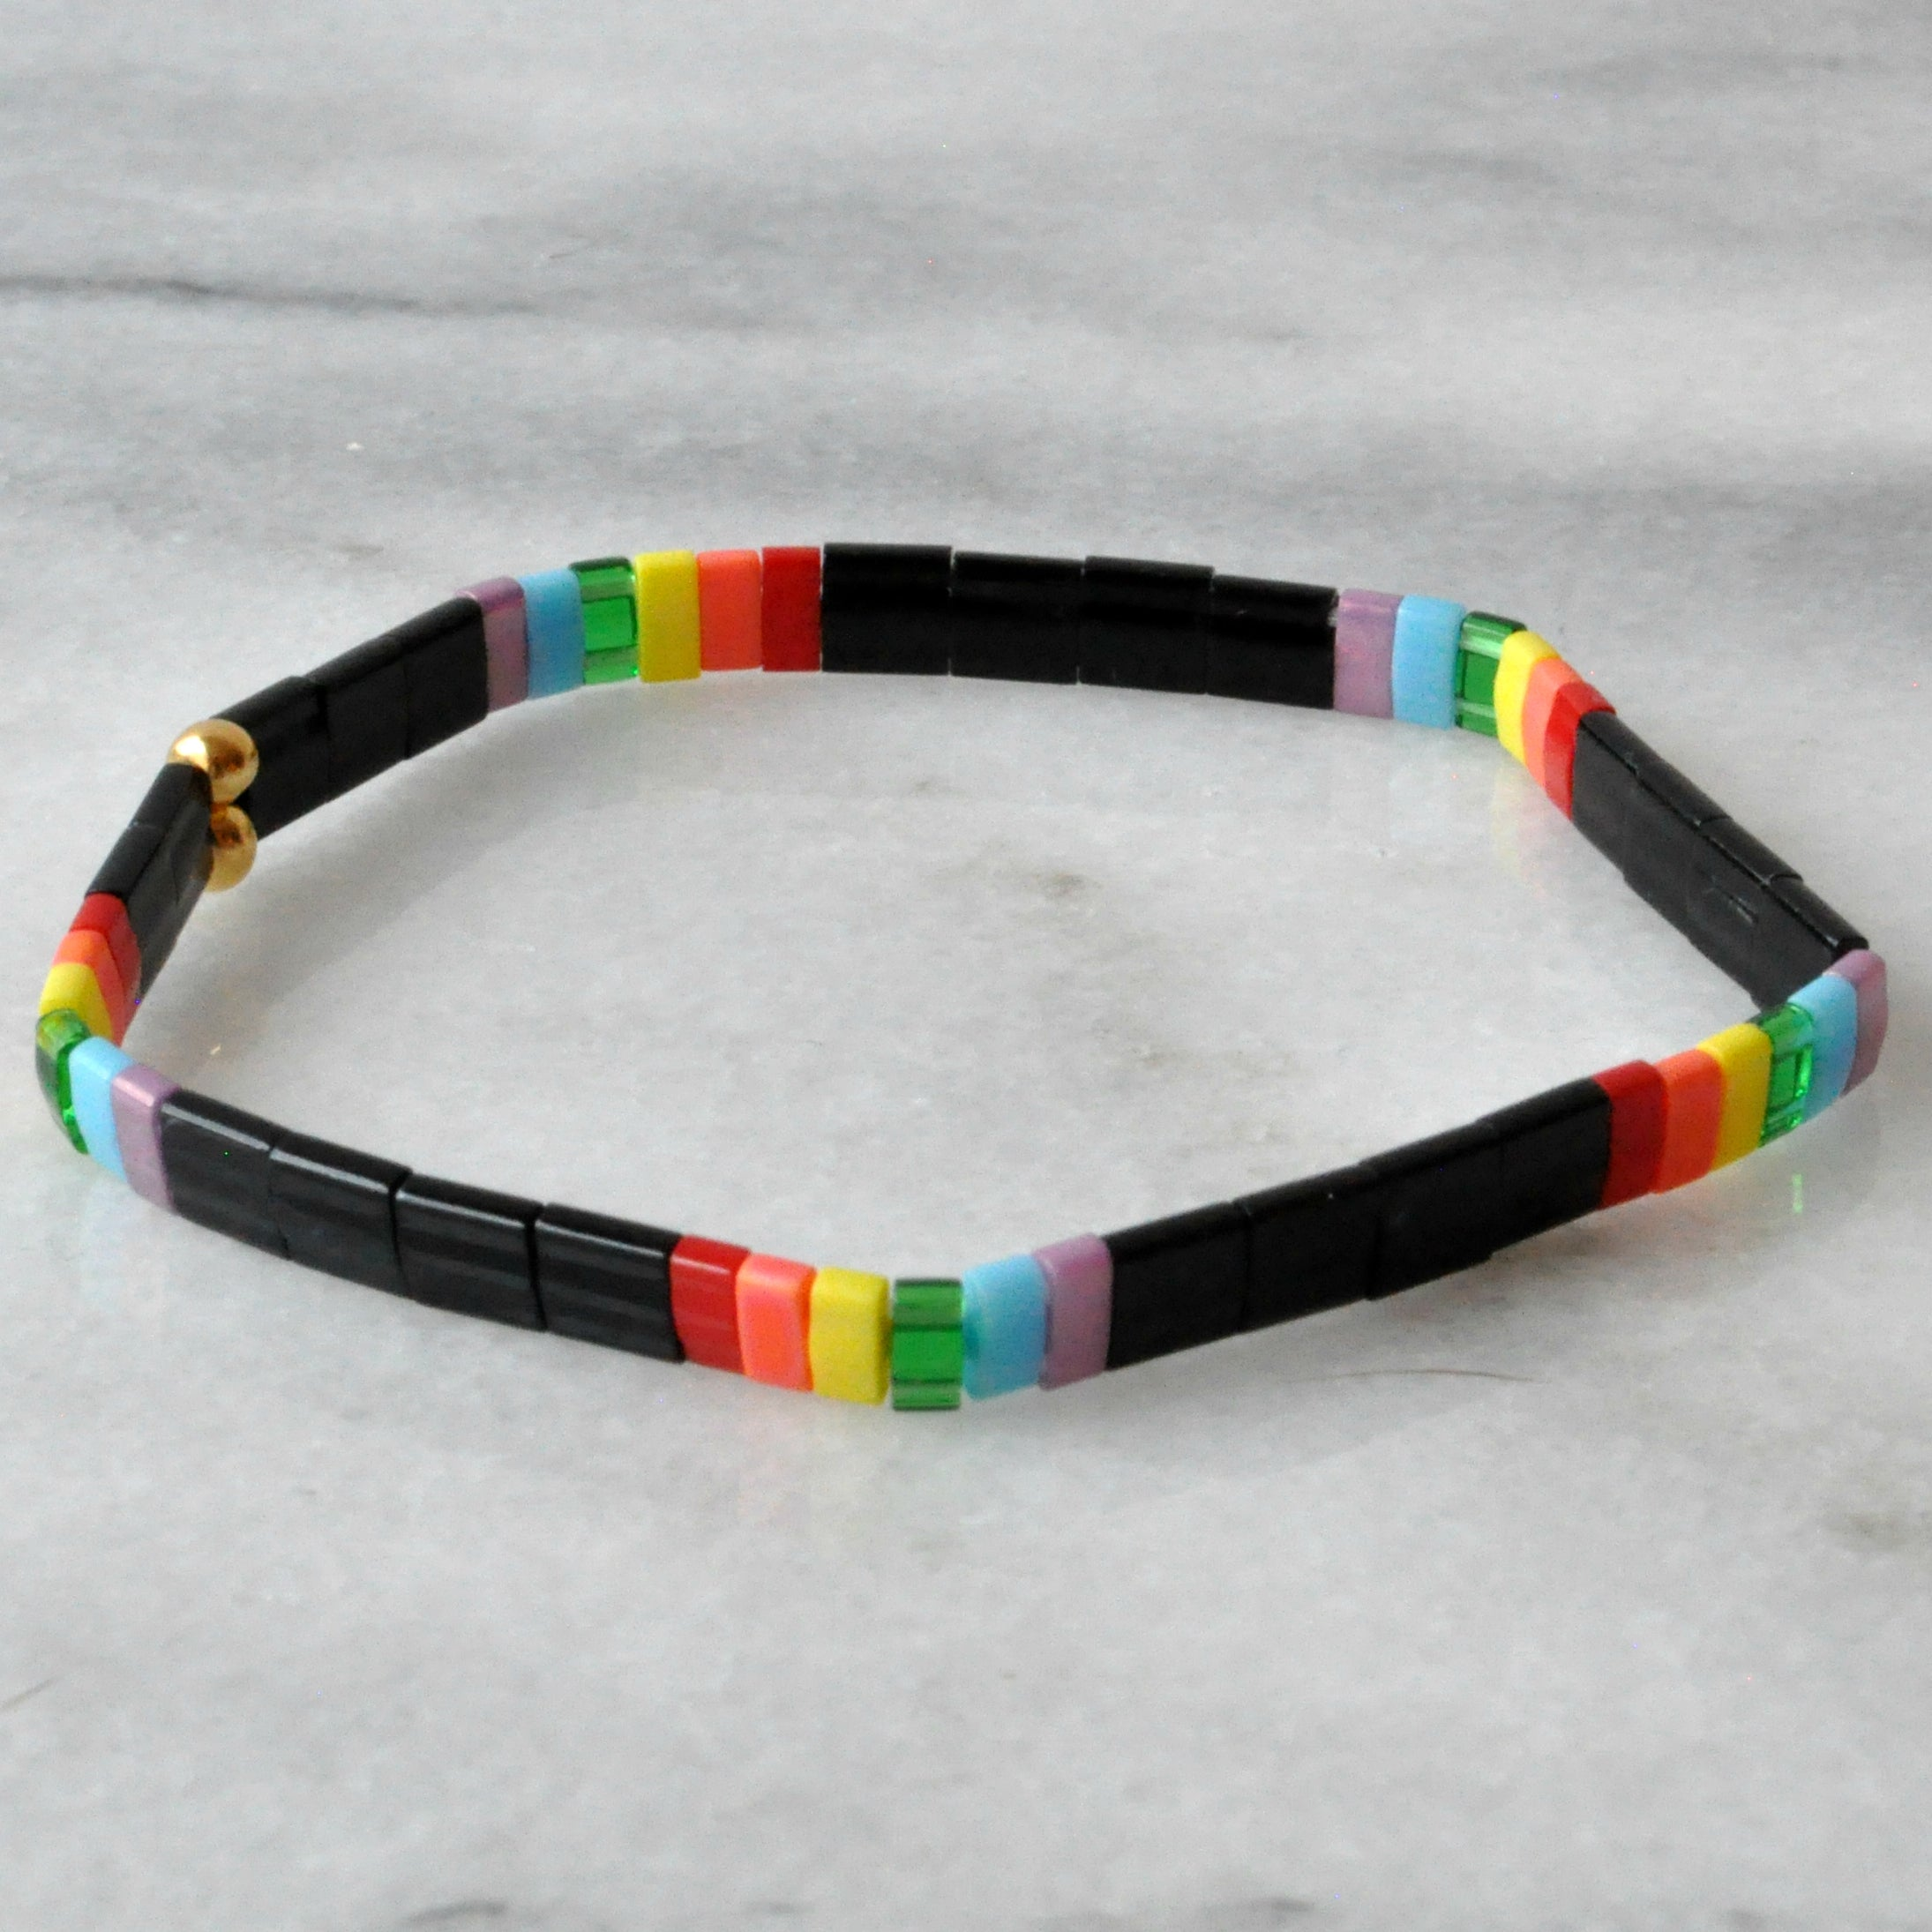 Libby & Smee stretch tile bracelet in Black Rainbow